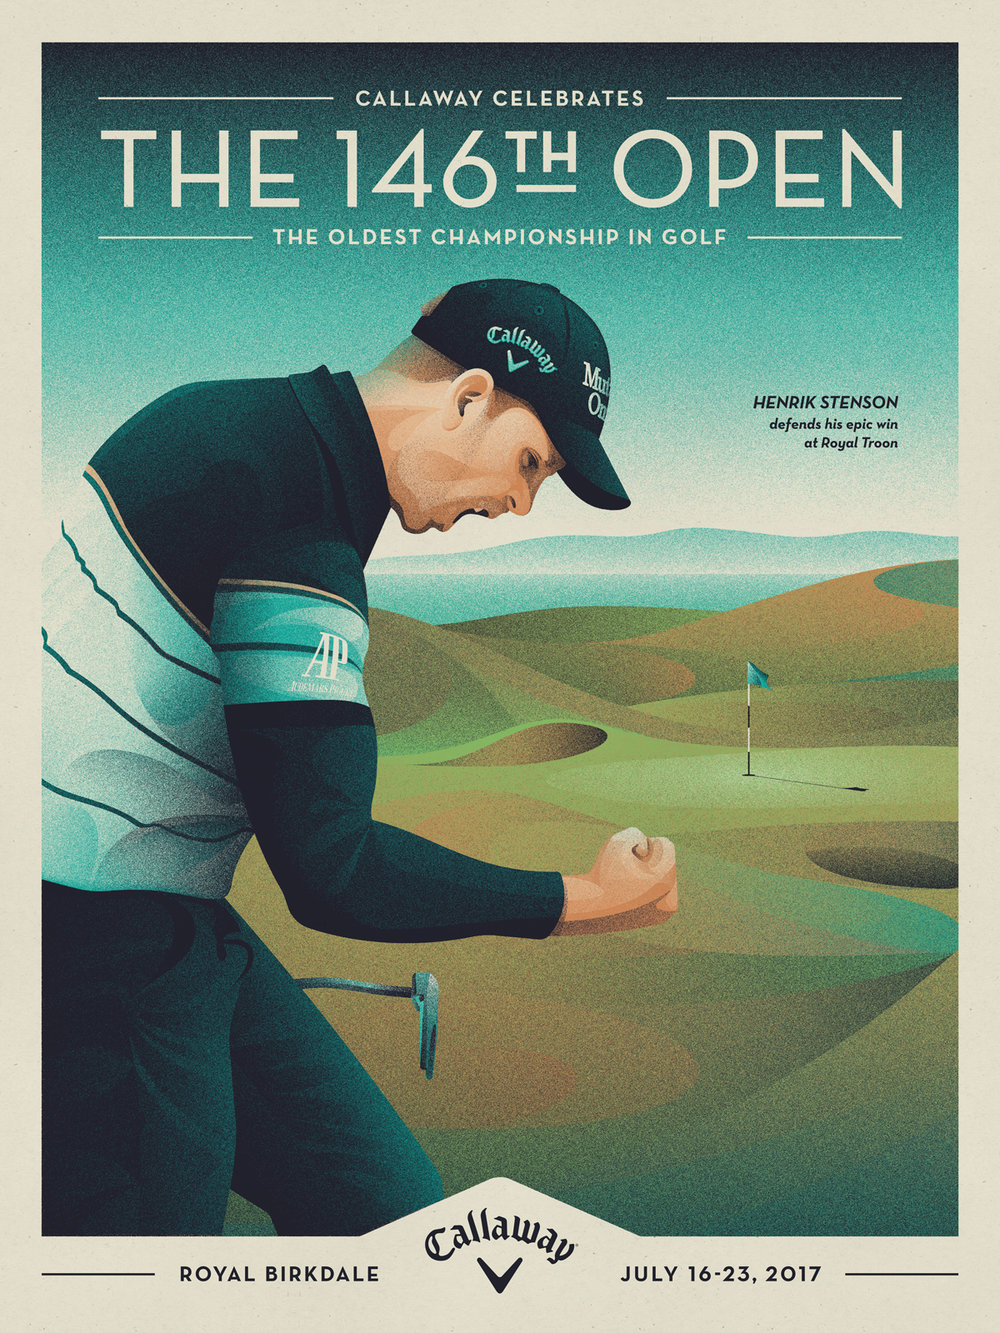 Callaway+Open+Championship+Poster+by+DKNG.jpeg